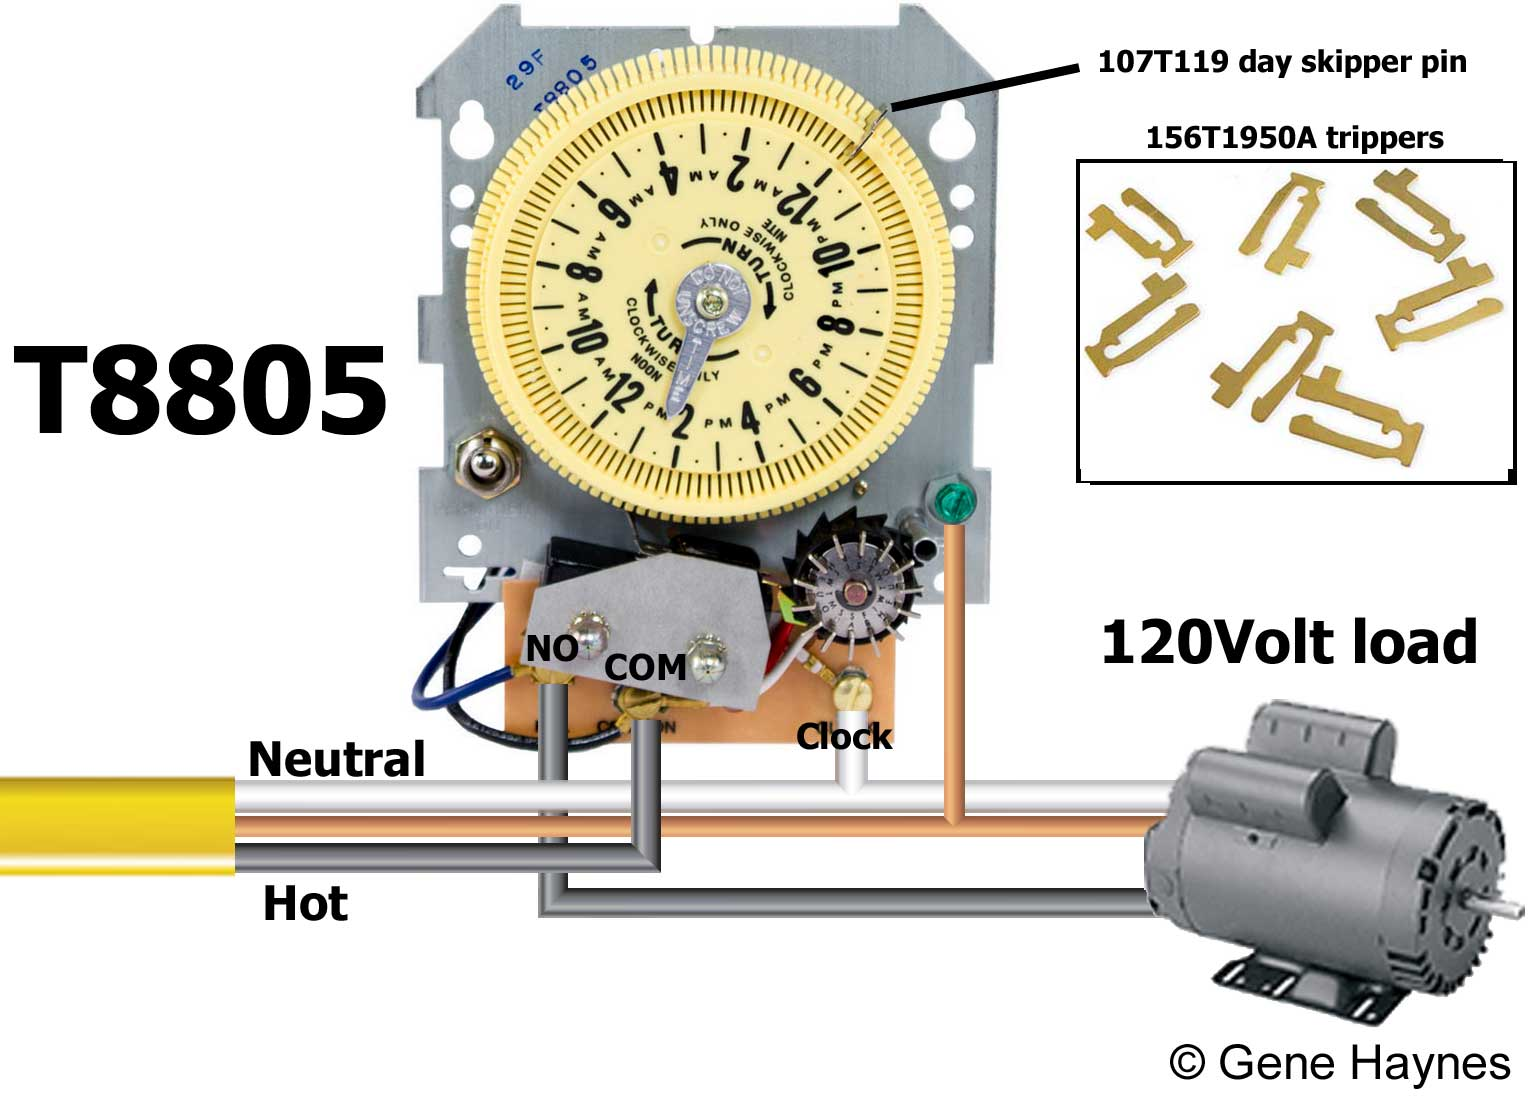 intermatic sprinkler timer wiring diagram 2016 ford f150 radio how to wire and irrigation timers manuals t8805m101c mechanism only fints into any enclosure no rain sensor terminals 14 day skipper wheel